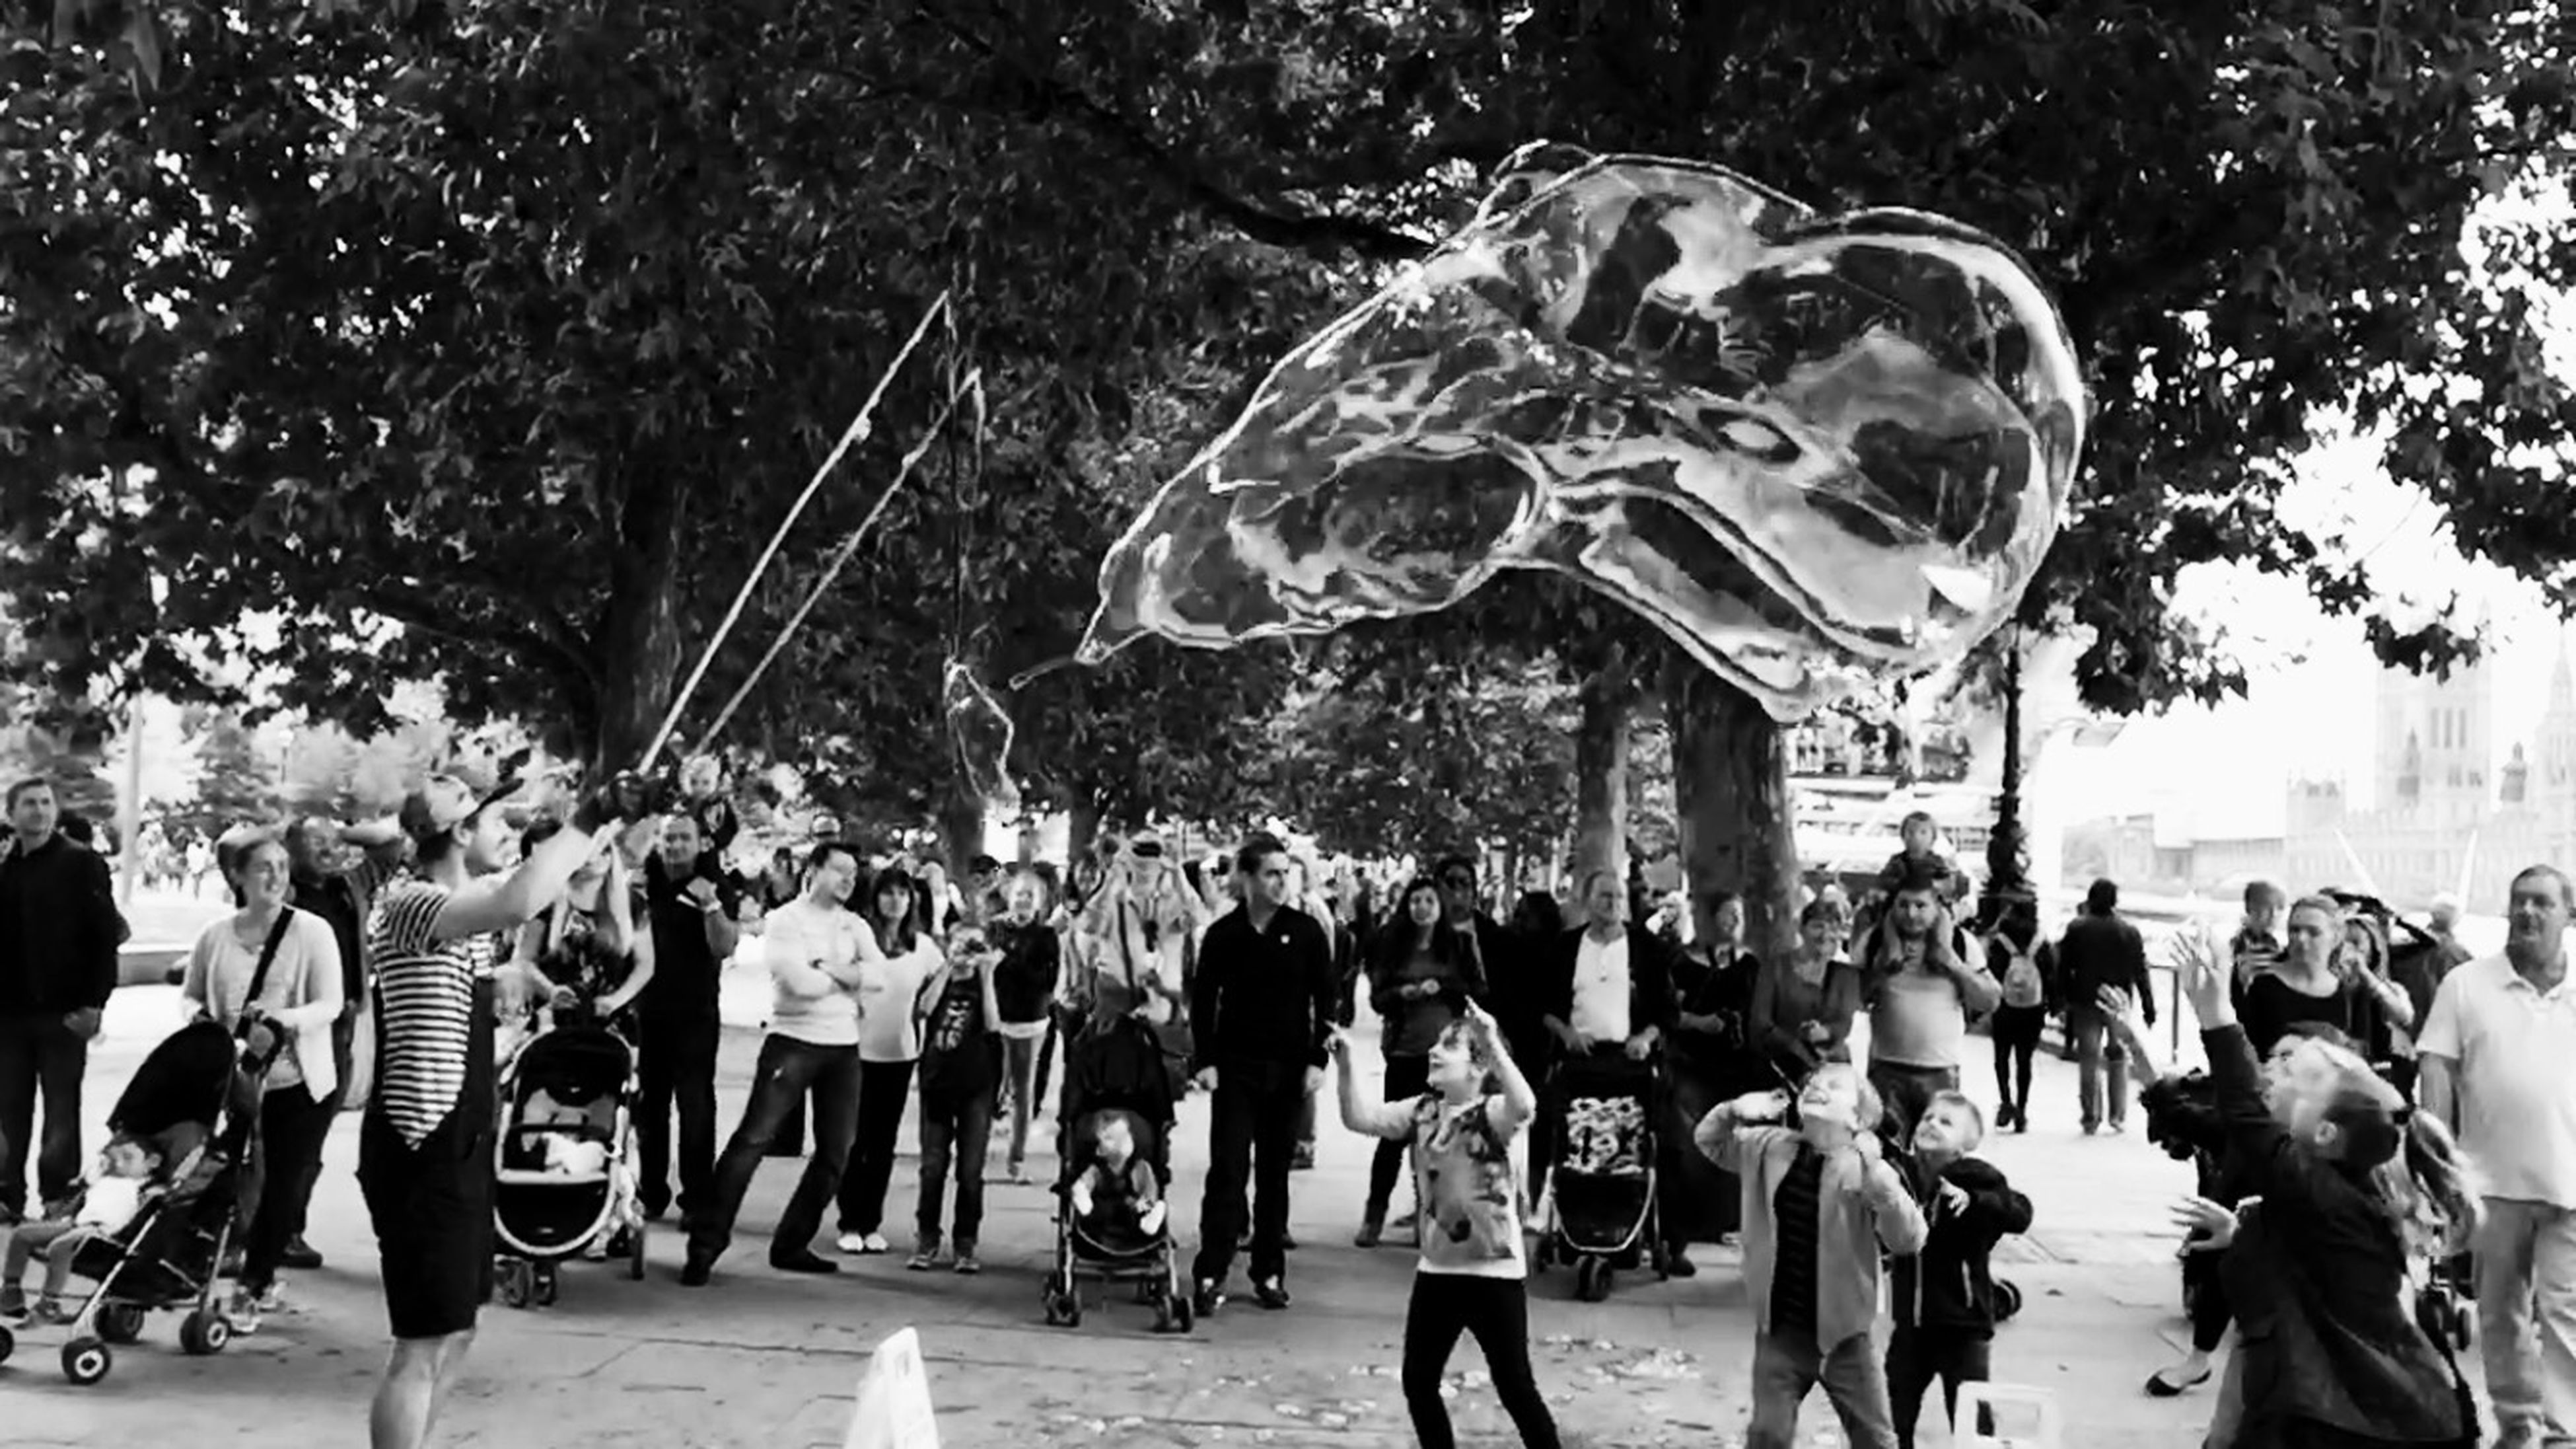 large group of people, person, men, lifestyles, leisure activity, arts culture and entertainment, crowd, mixed age range, tree, sculpture, celebration, art and craft, street, cultures, statue, built structure, motion, outdoors, travel